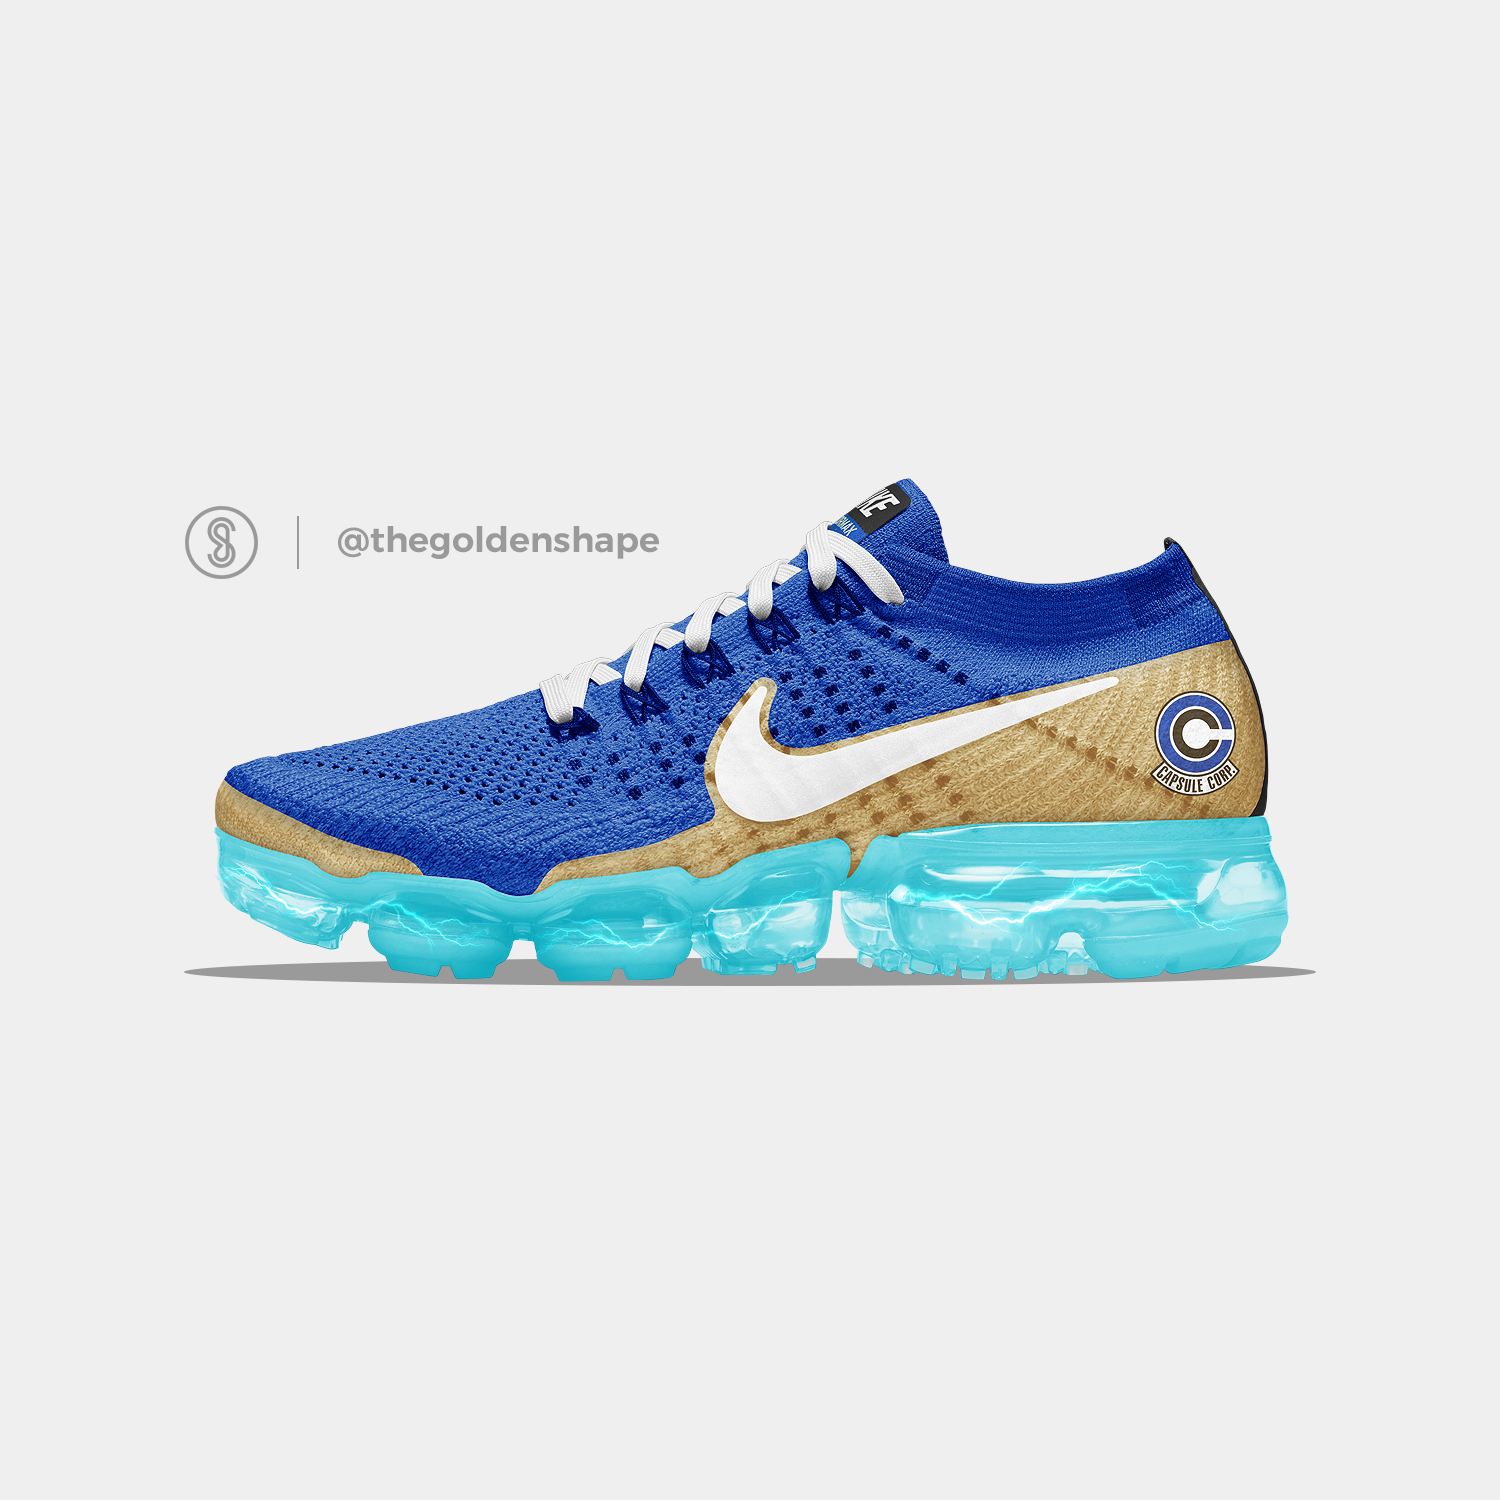 Dragon X Vegeta BlueFlya Super Ball Vapormax Nike Saiyan b67gYfy